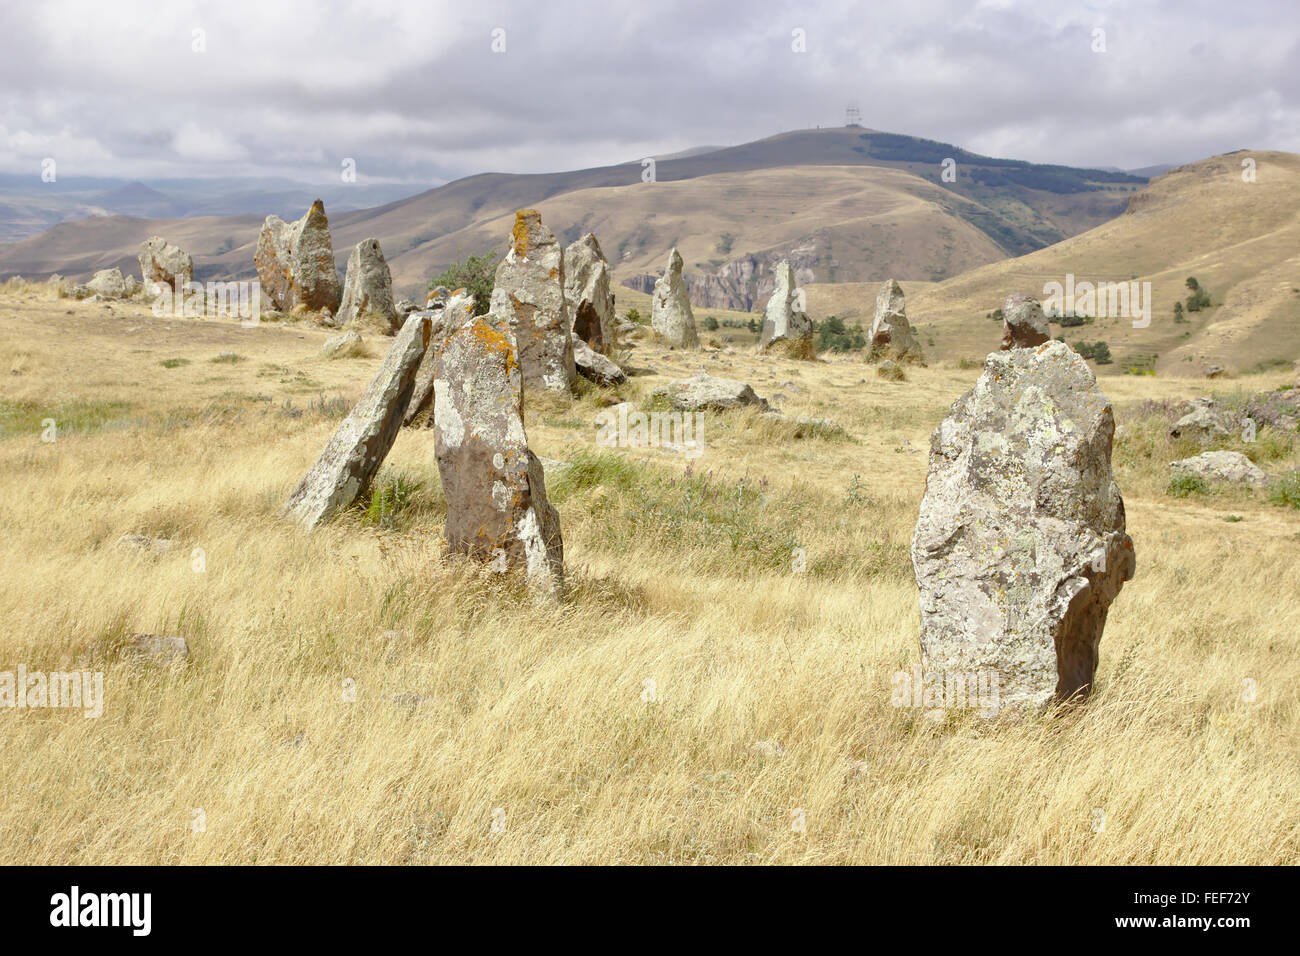 Zorats Karer stone circle near Sisian in Armenia - Stock Image